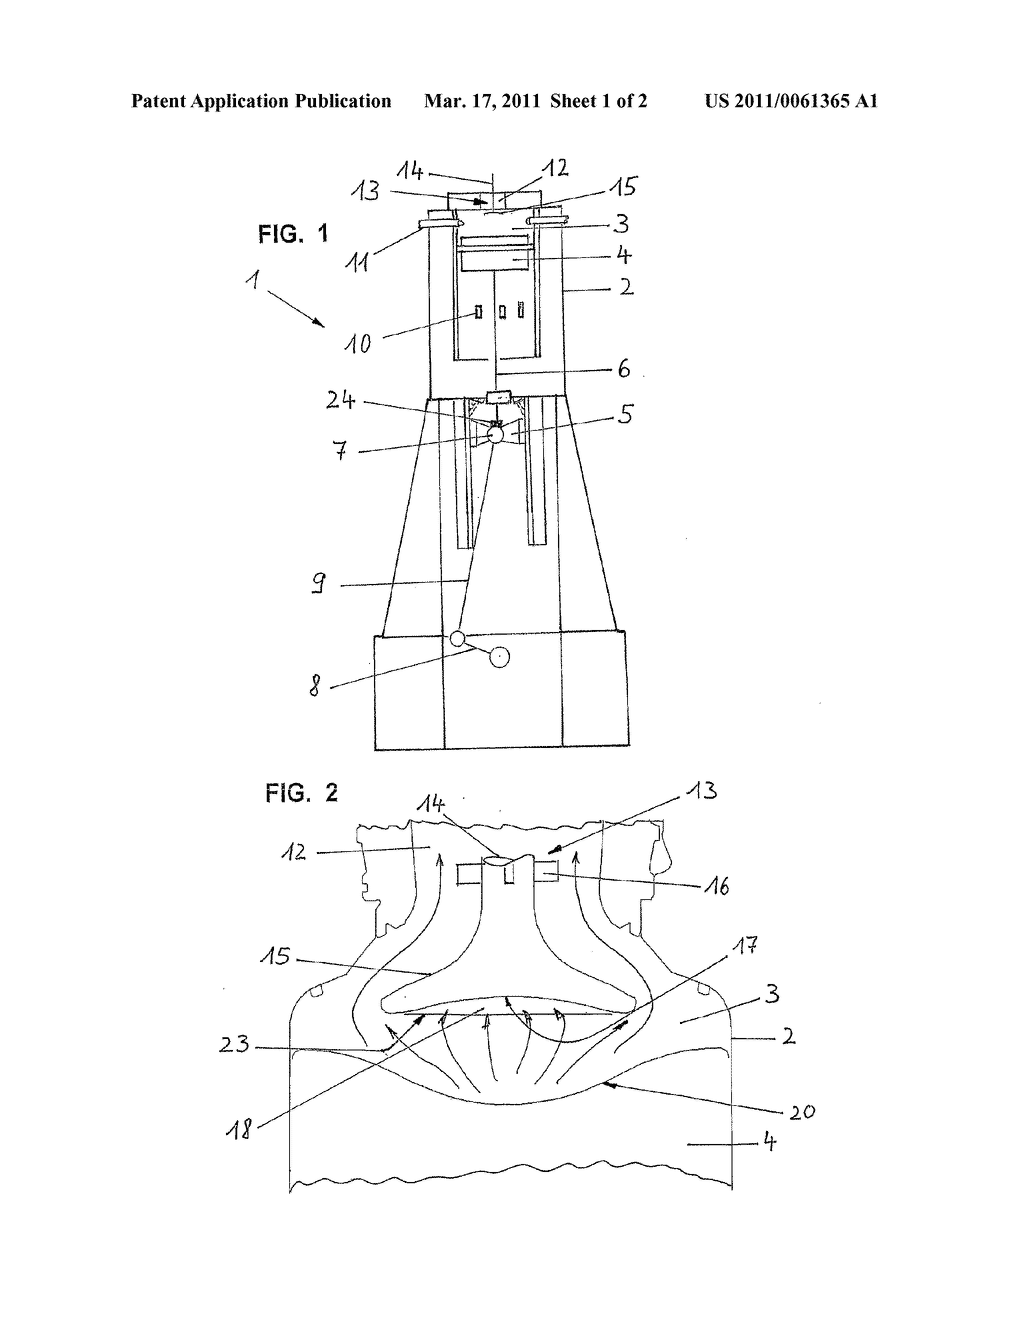 hight resolution of exhaust valve for a large sized two stroke diesel engine process for reduction on nox formation in such an engine and such engine diagram schematic